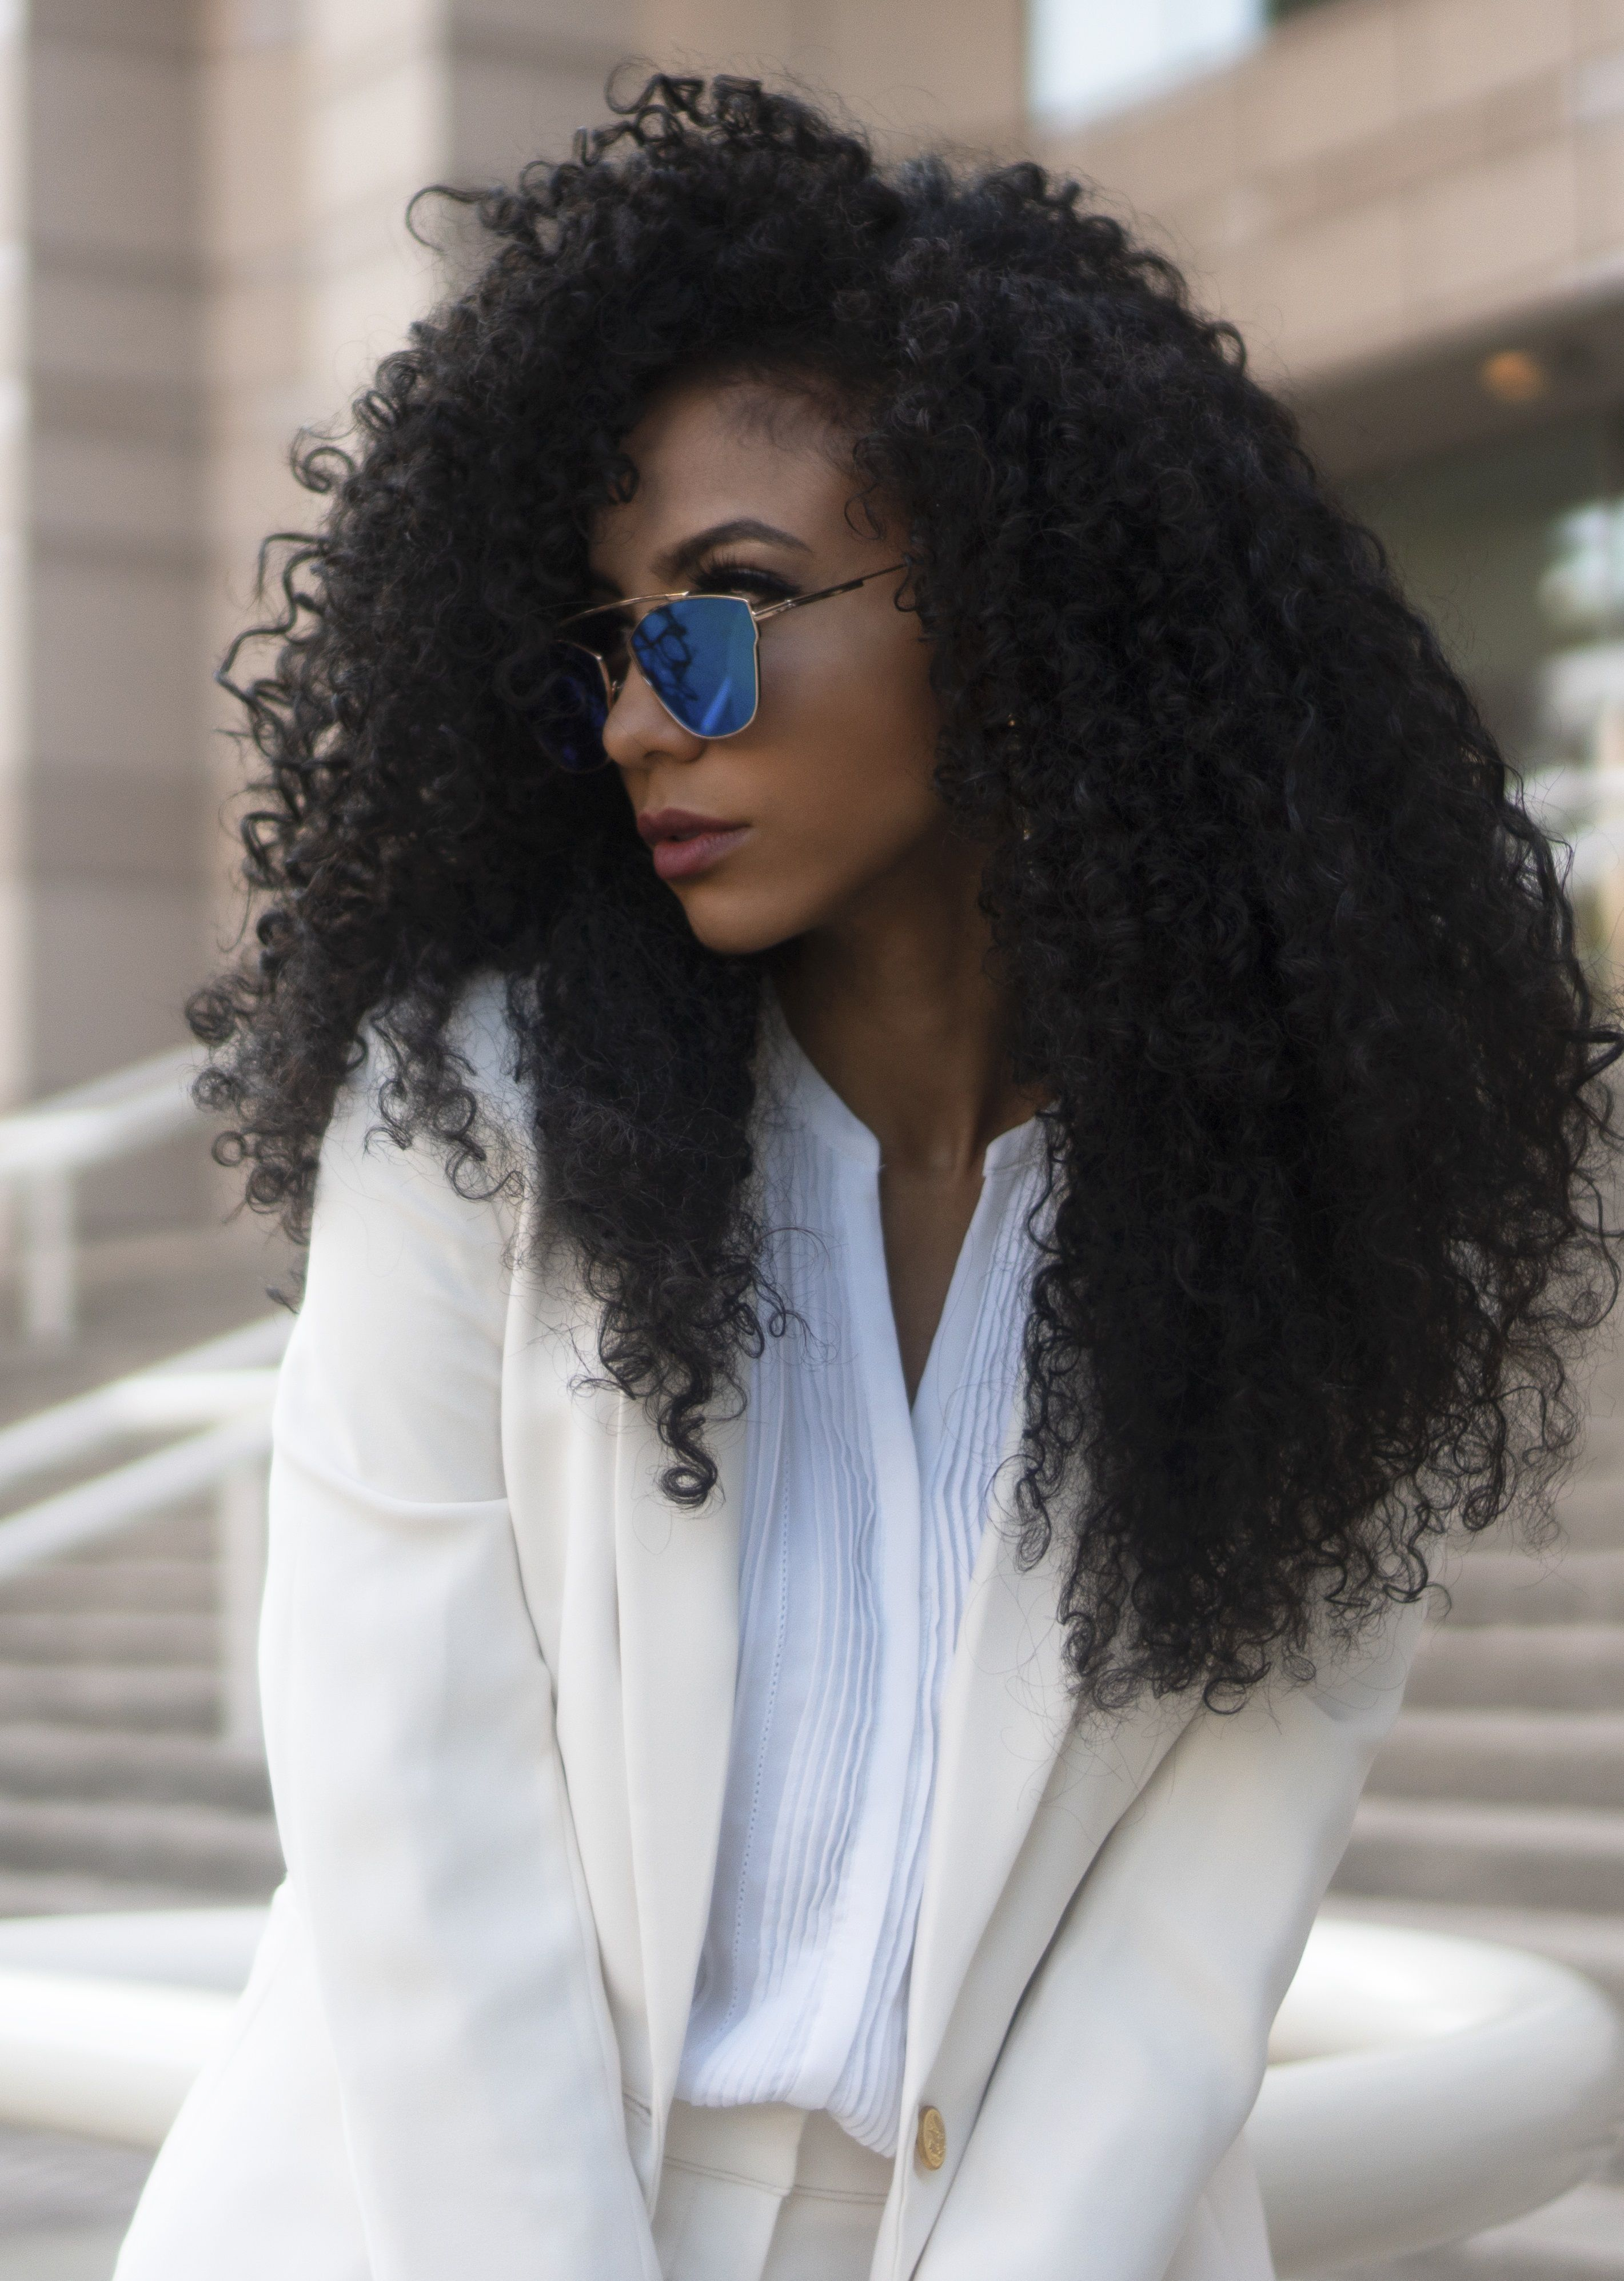 28+ Business casual hairstyles female long hair inspirations